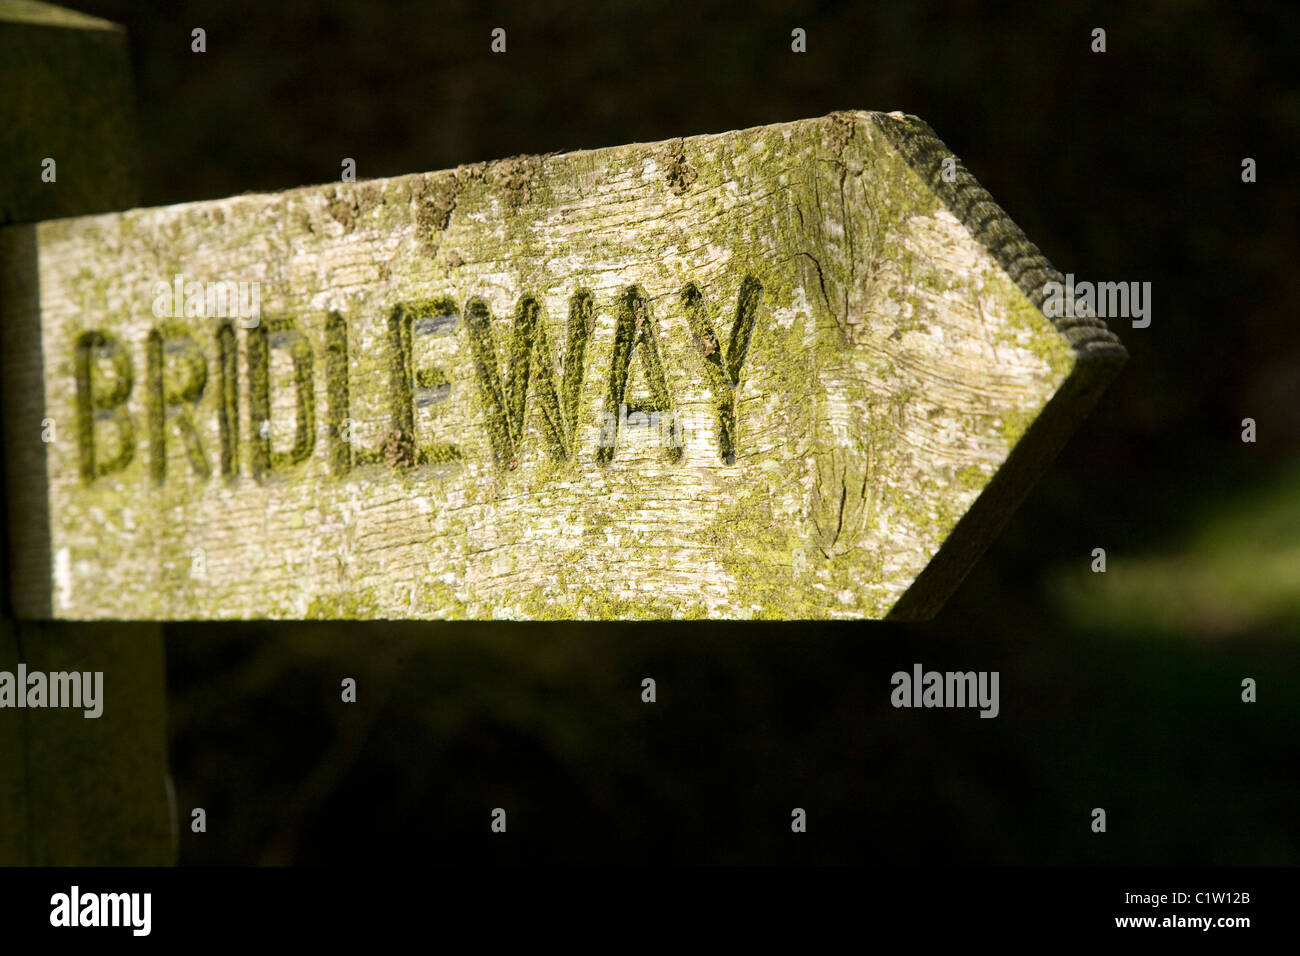 Wooden bridleway sign pointing direction arrow - Stock Image